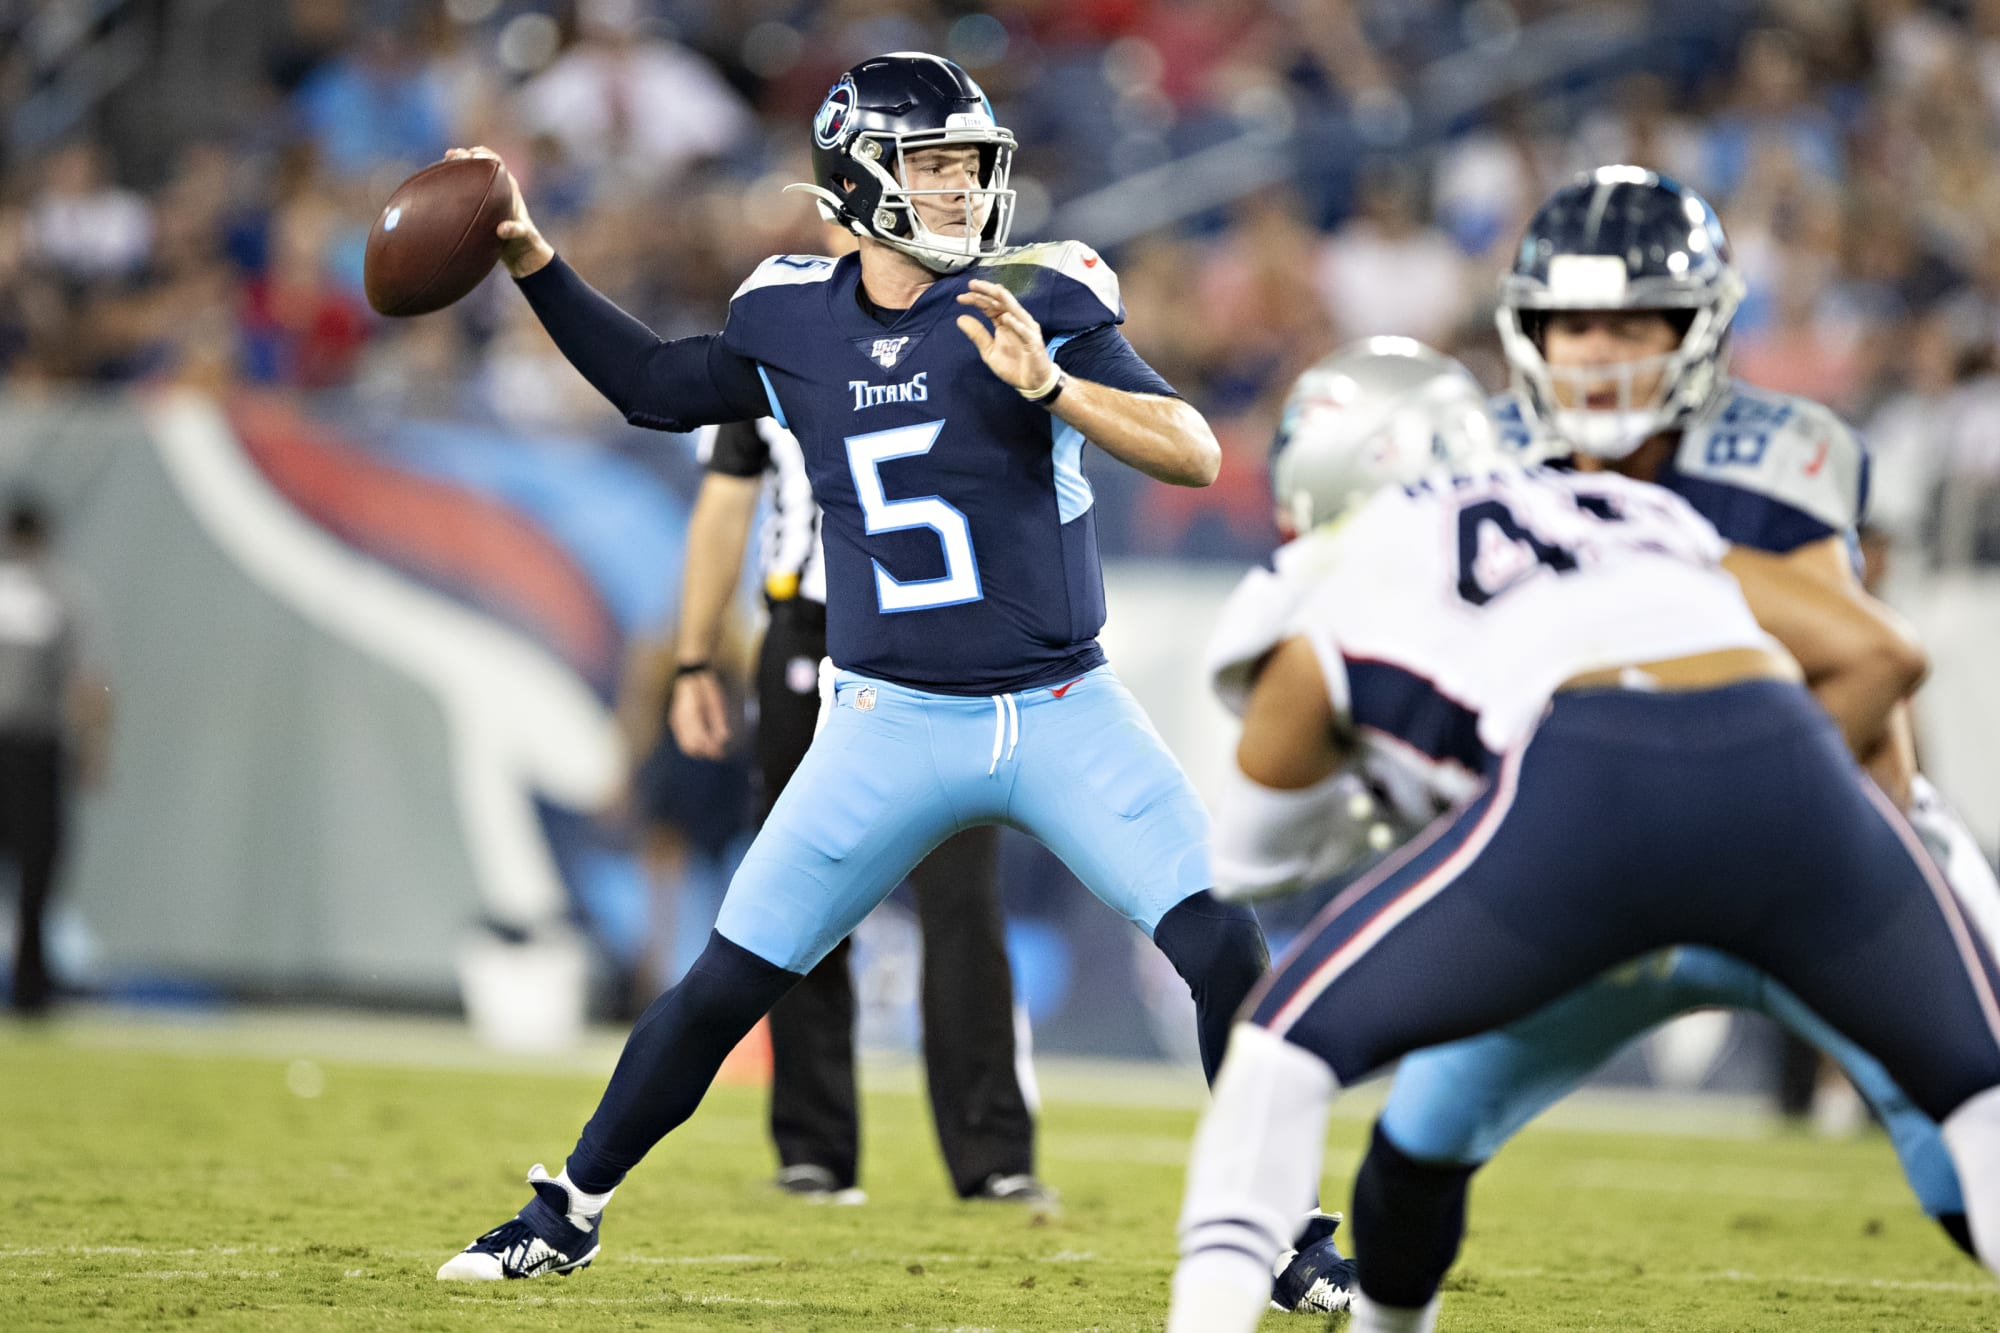 What the preseason cancellation means for the Tennessee Titans